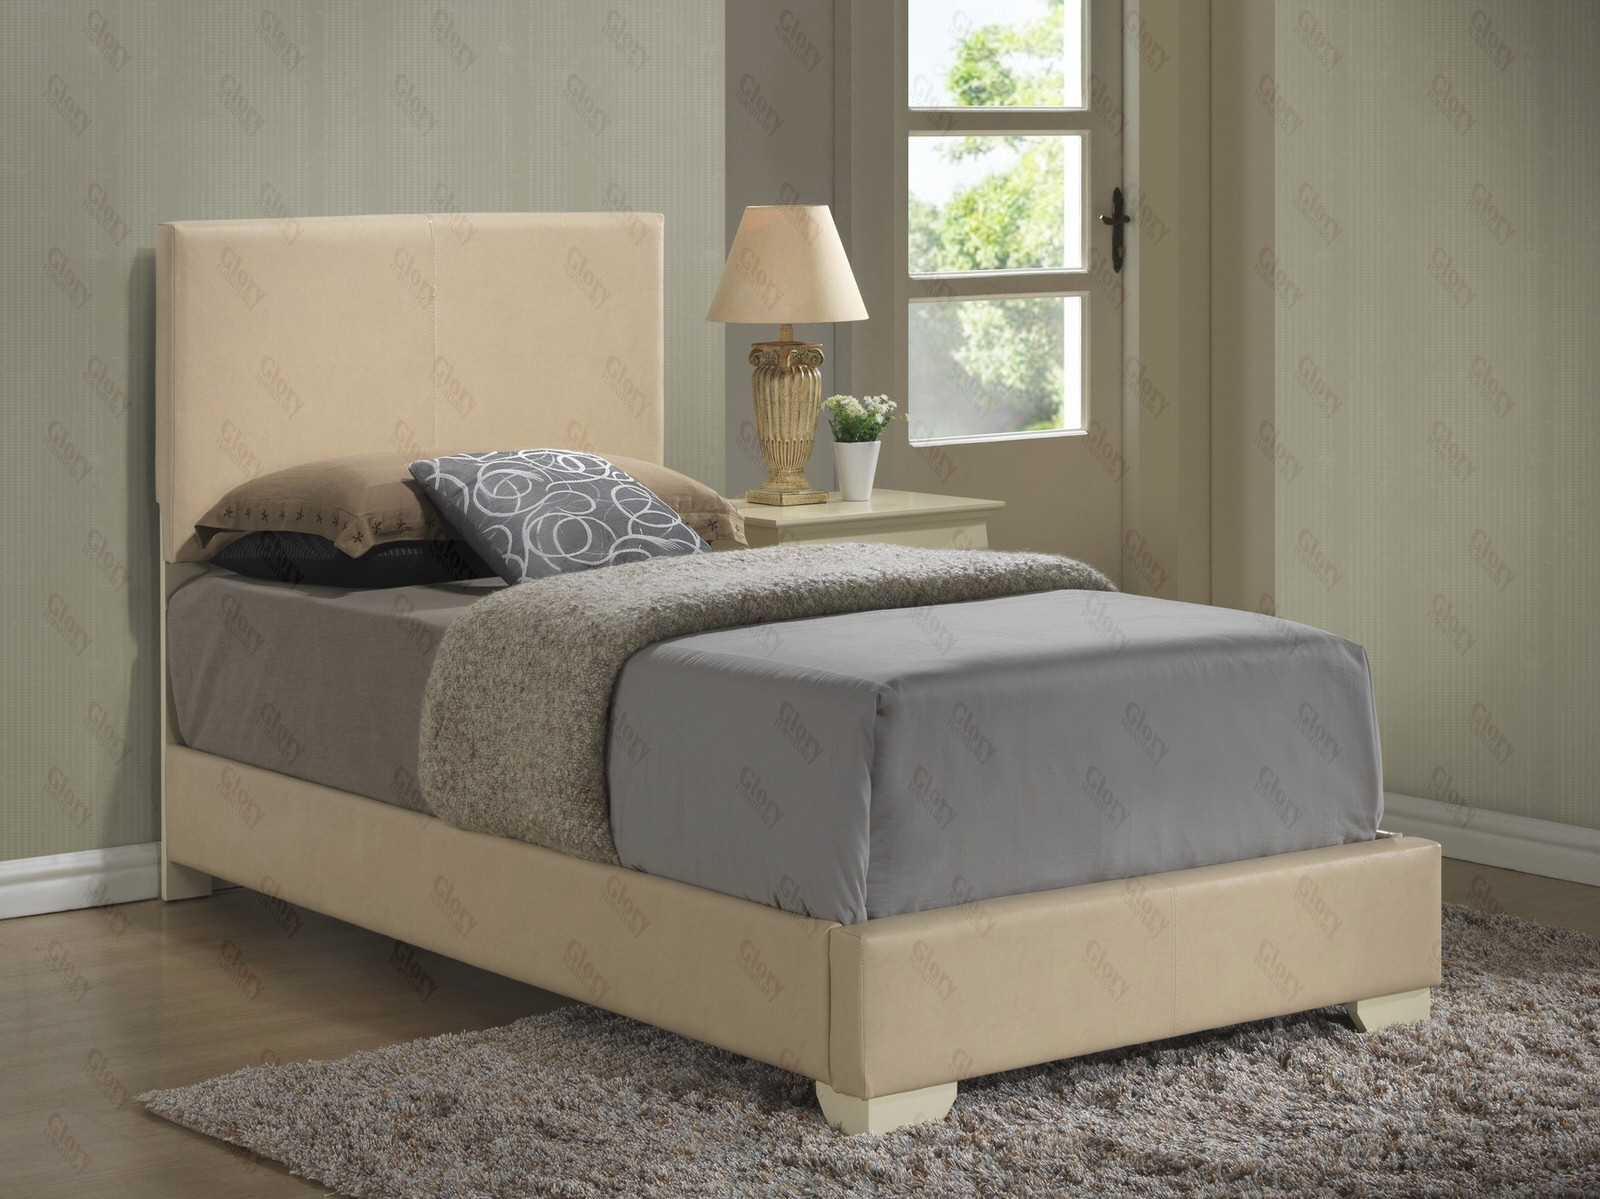 Nyc Bedroom Furniture Twin Upholstered Bed With Mattress Set Free Delivery In Nyc